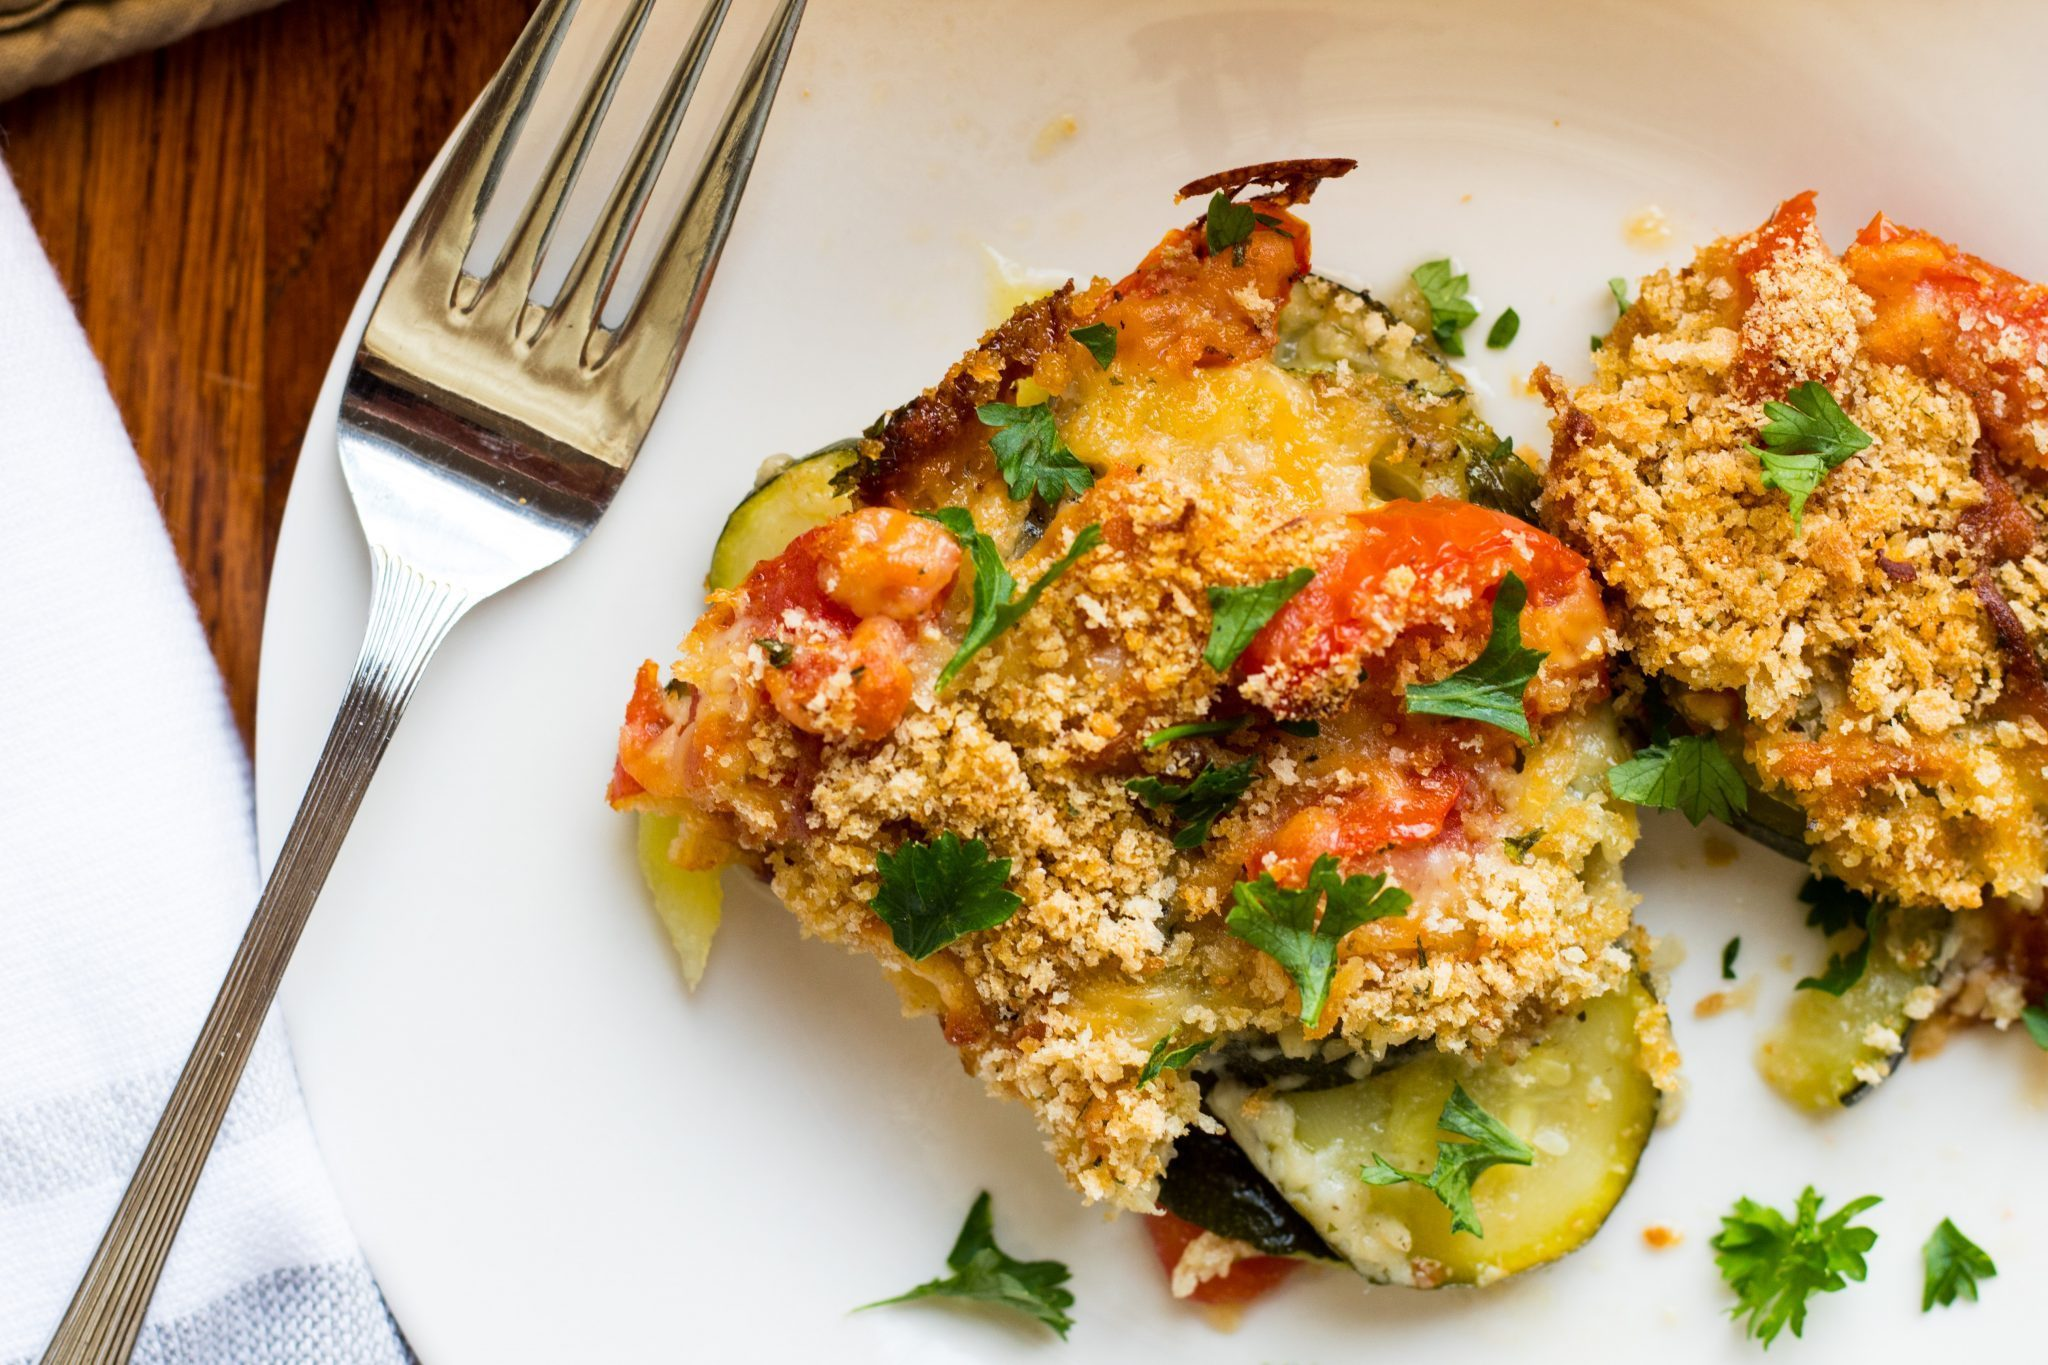 Tomato Zucchini & Mozzarella with Bread Crumb Topping